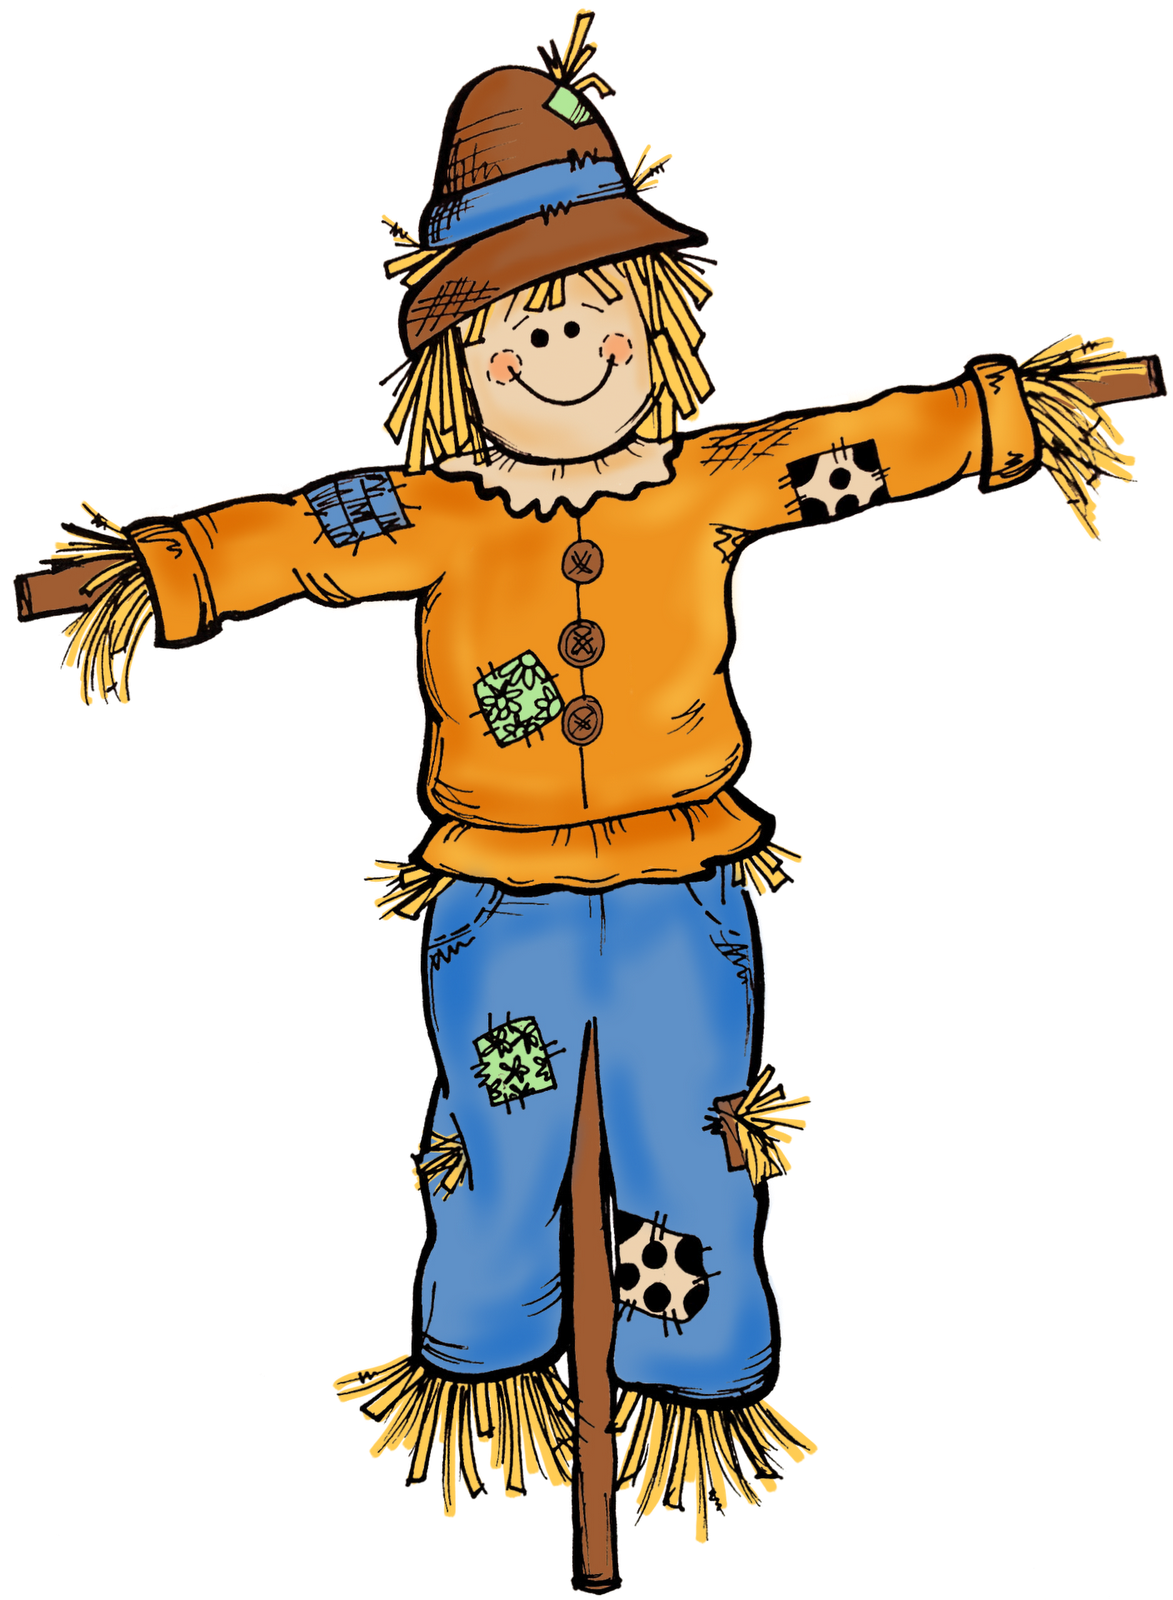 Halloween scarecrow clipart clipart transparent Fall Scenes Clip Art | ... sneak peak at some autumn clipart that ... clipart transparent